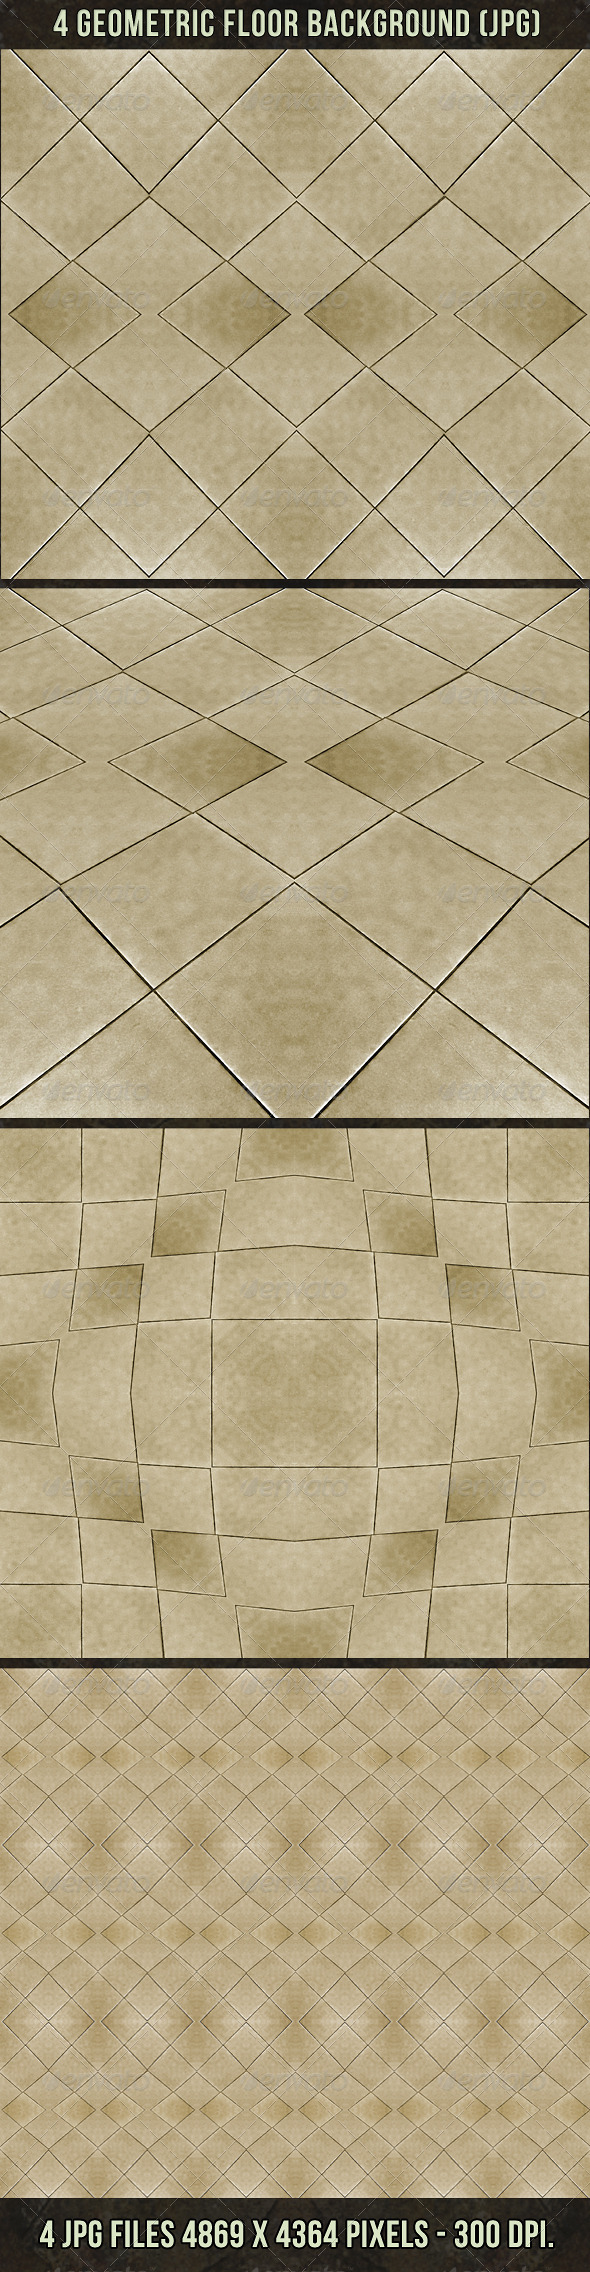 GraphicRiver 4 Geometric Floor Abstract Background 4615320